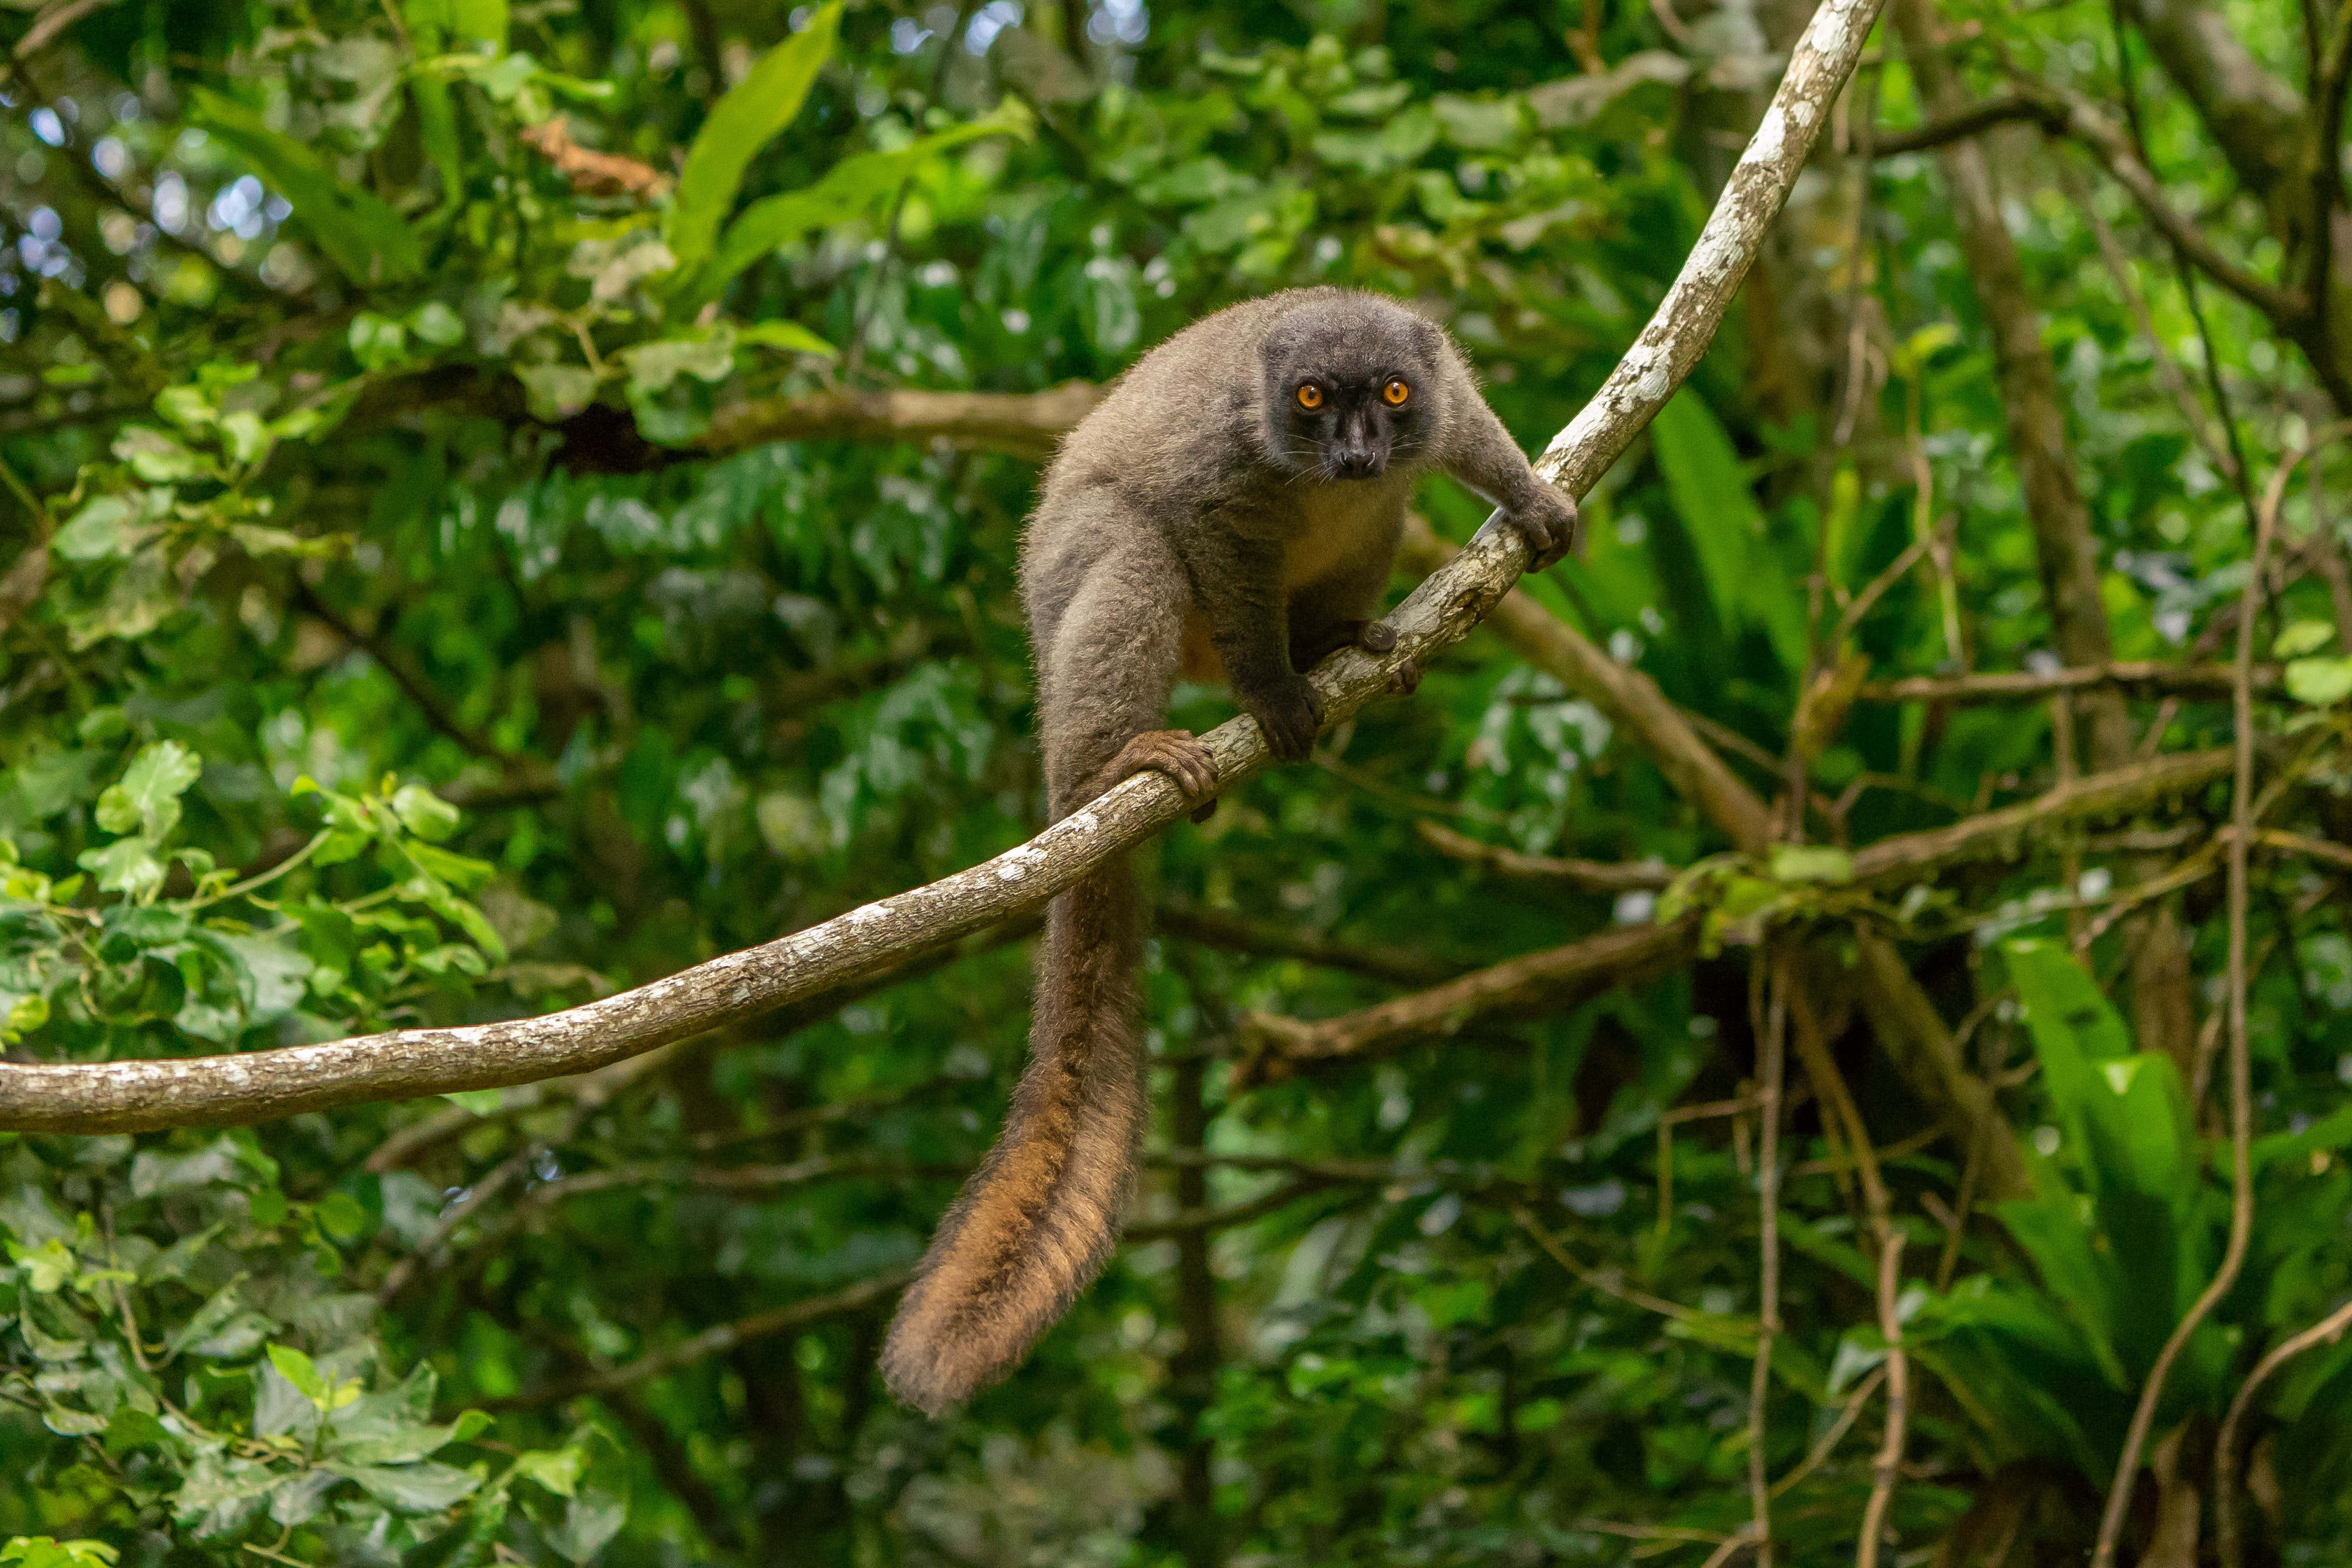 63282 download wallpaper Animals, Lemur, Animal, Sight, Opinion, Branch, Wildlife screensavers and pictures for free